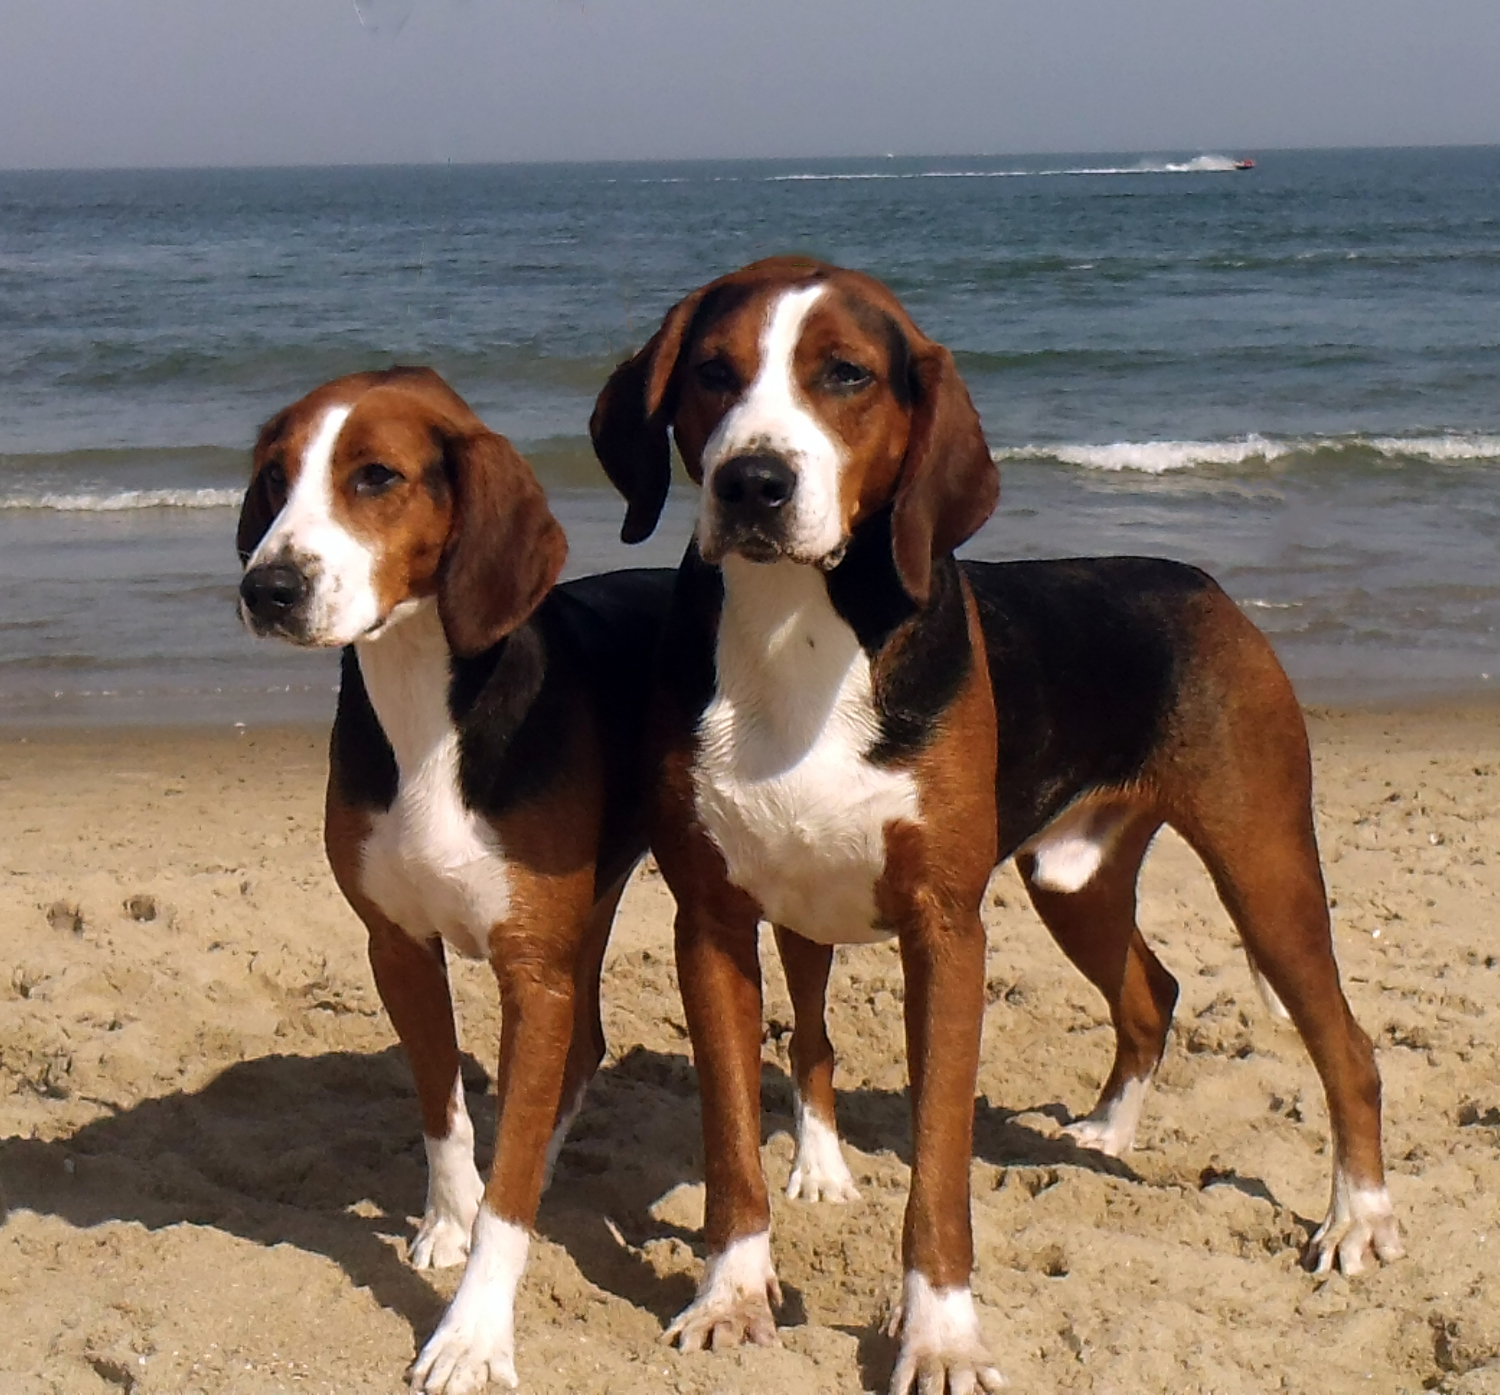 Alice and Rolo enjoying a day at the beach.